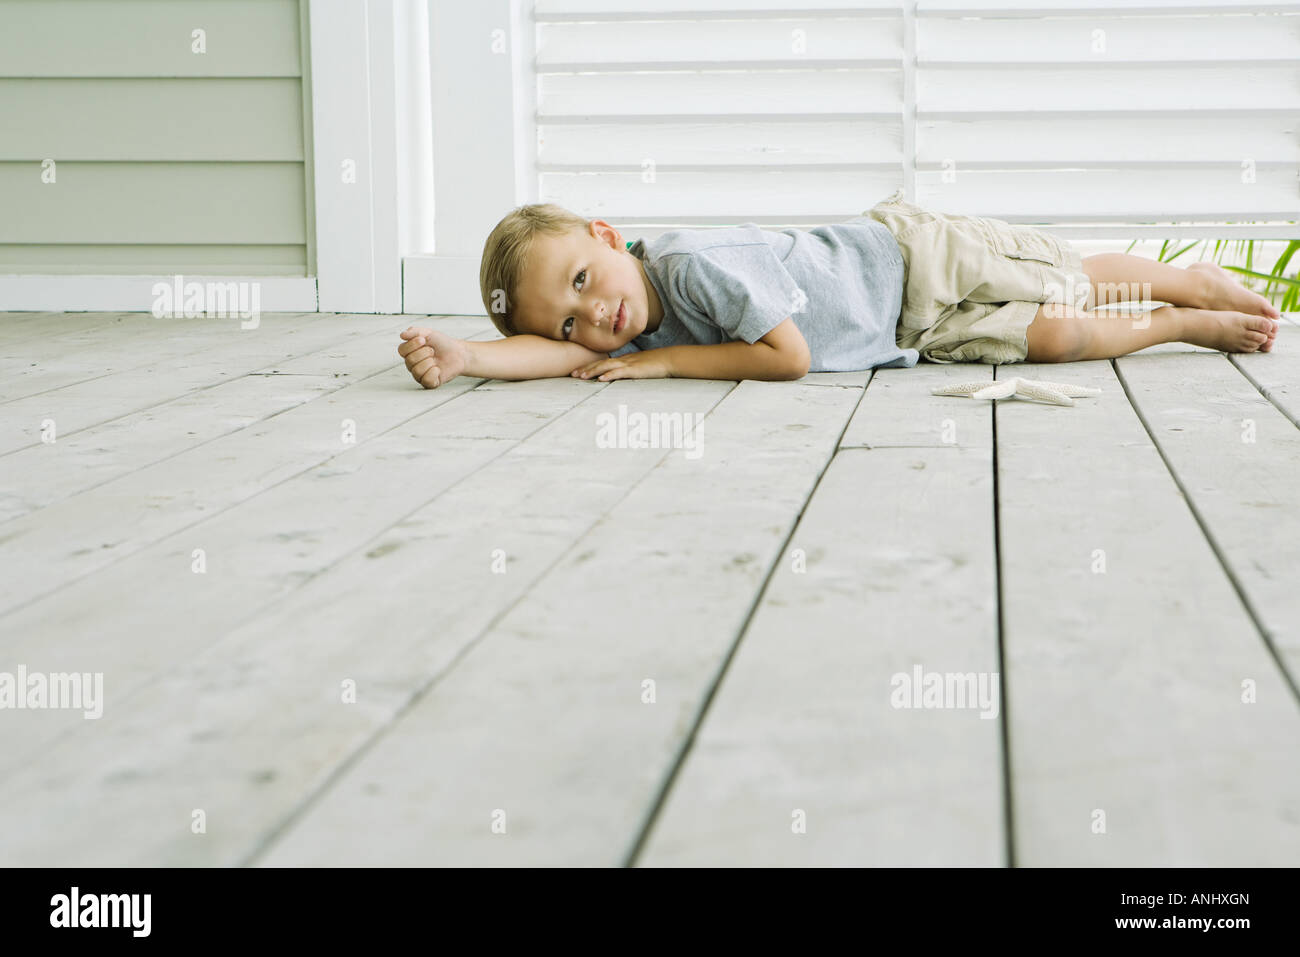 Boy lying on the ground next to starfish, head resting on arm - Stock Image